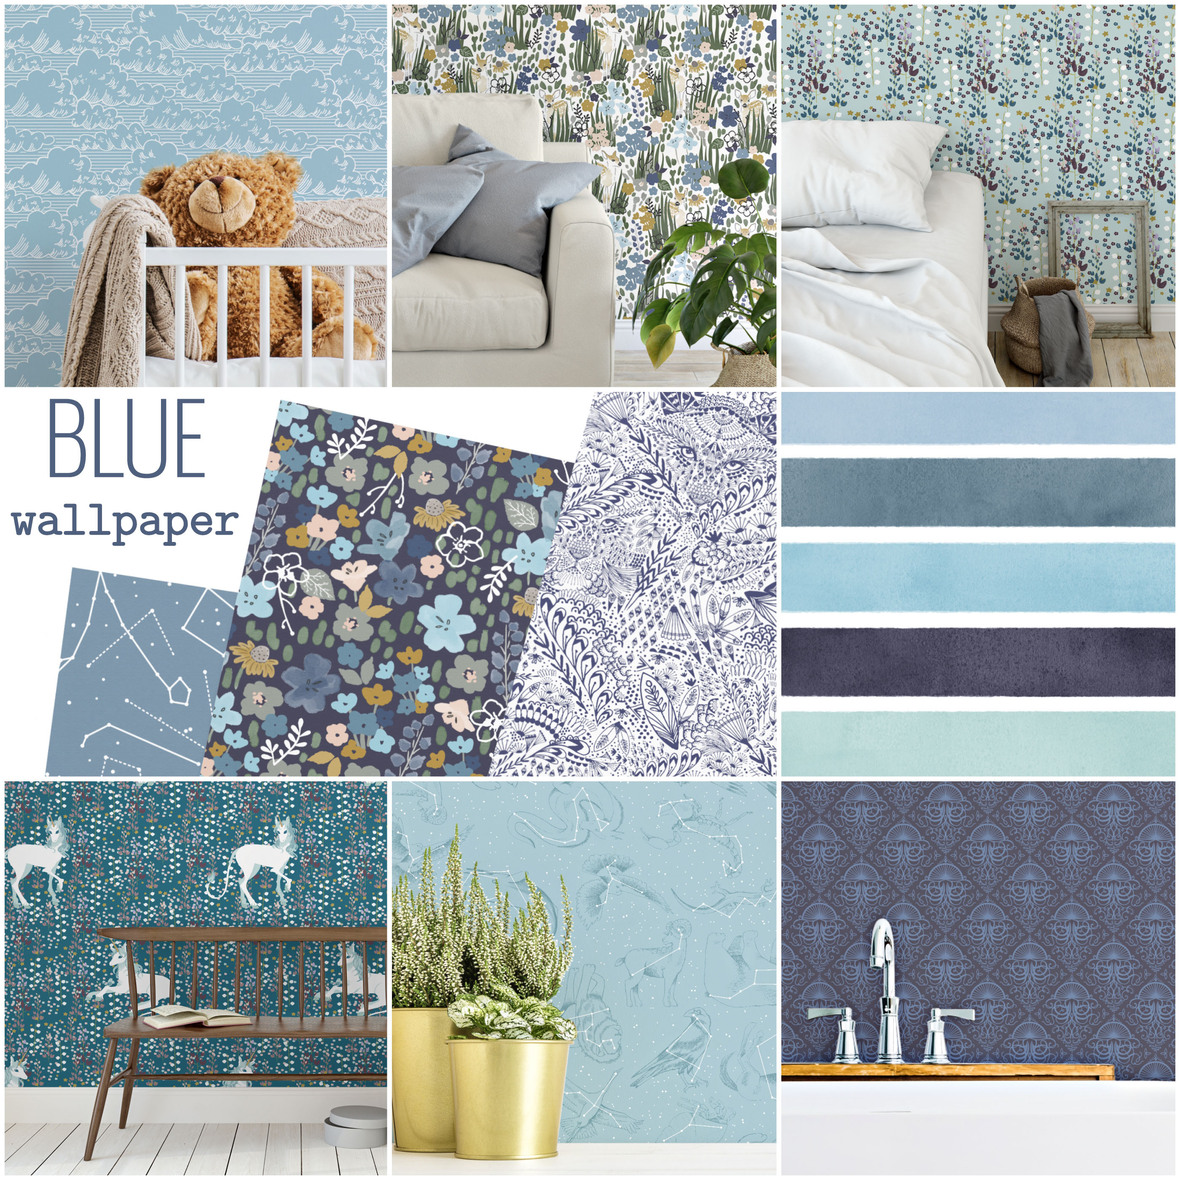 Hawthorne Supply Co Blue Peel and Stick Wallpaper